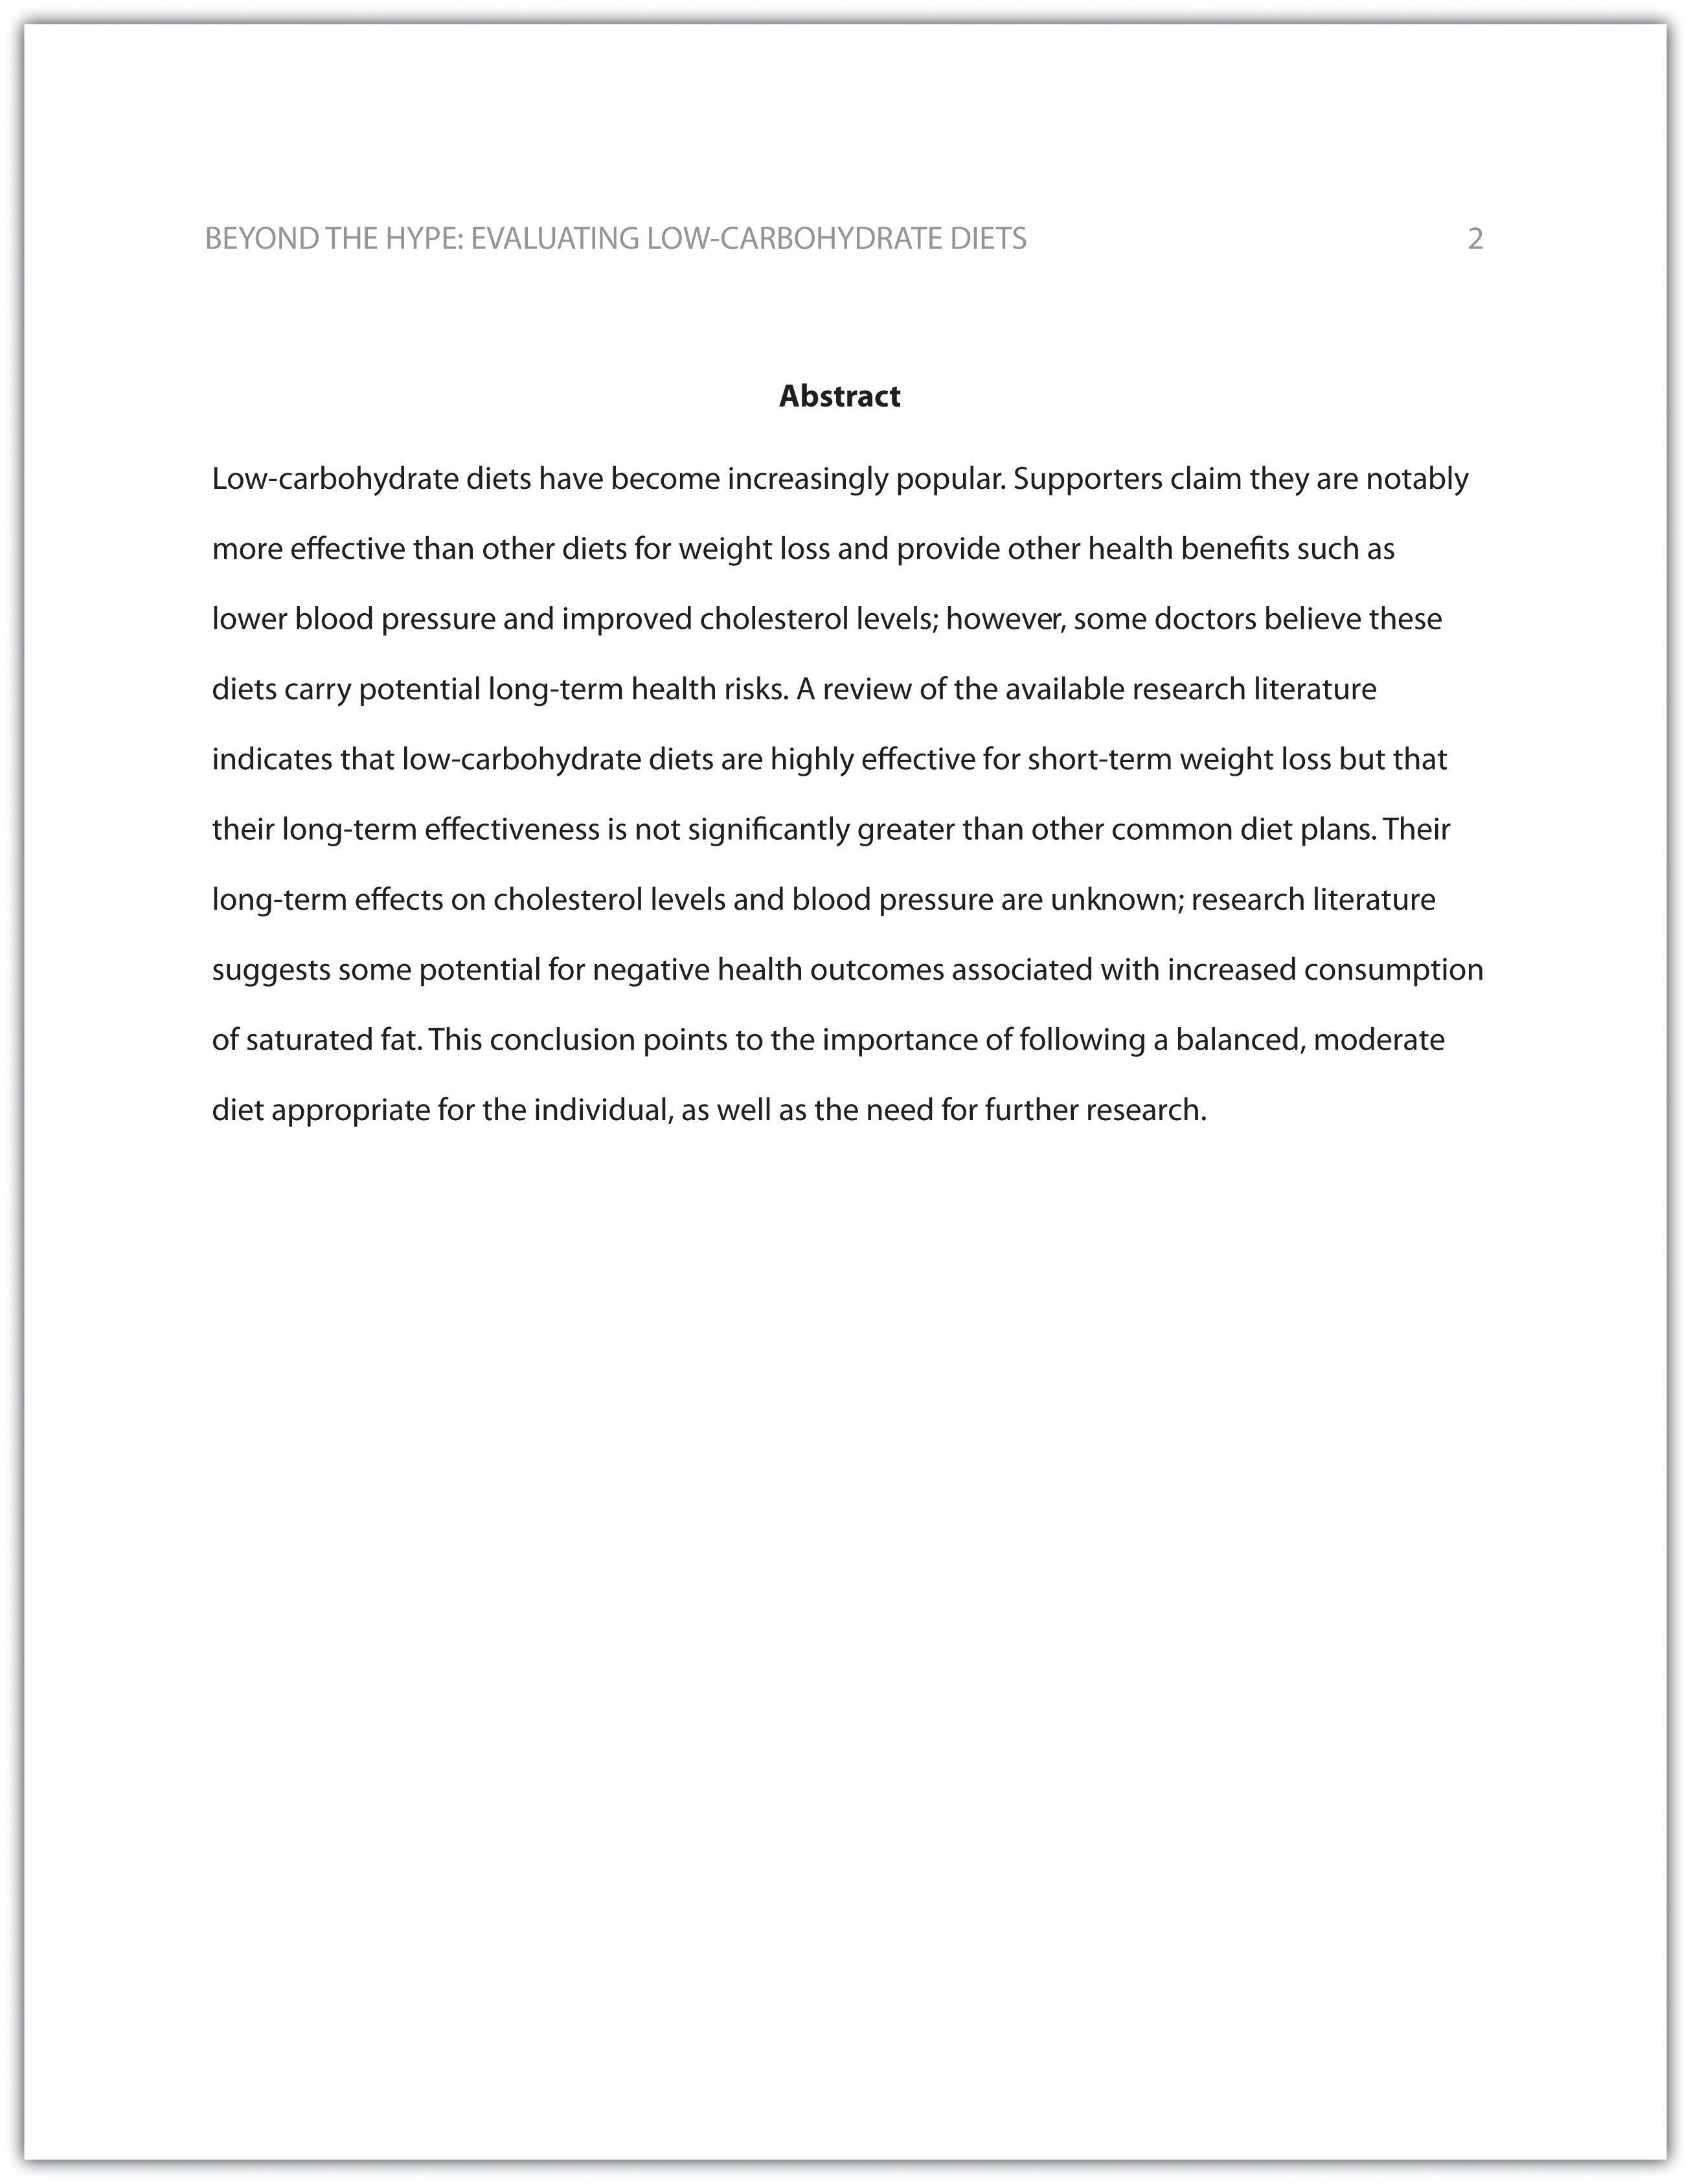 Good Parenting Essay Characteristics Of A Well Written Thesis Statement Admission Essay Examples For Graduate School also Nursing School Essay Sample Characteristics Of A Well Written Thesis Statement  Buy An Essay  Sport Essay Example